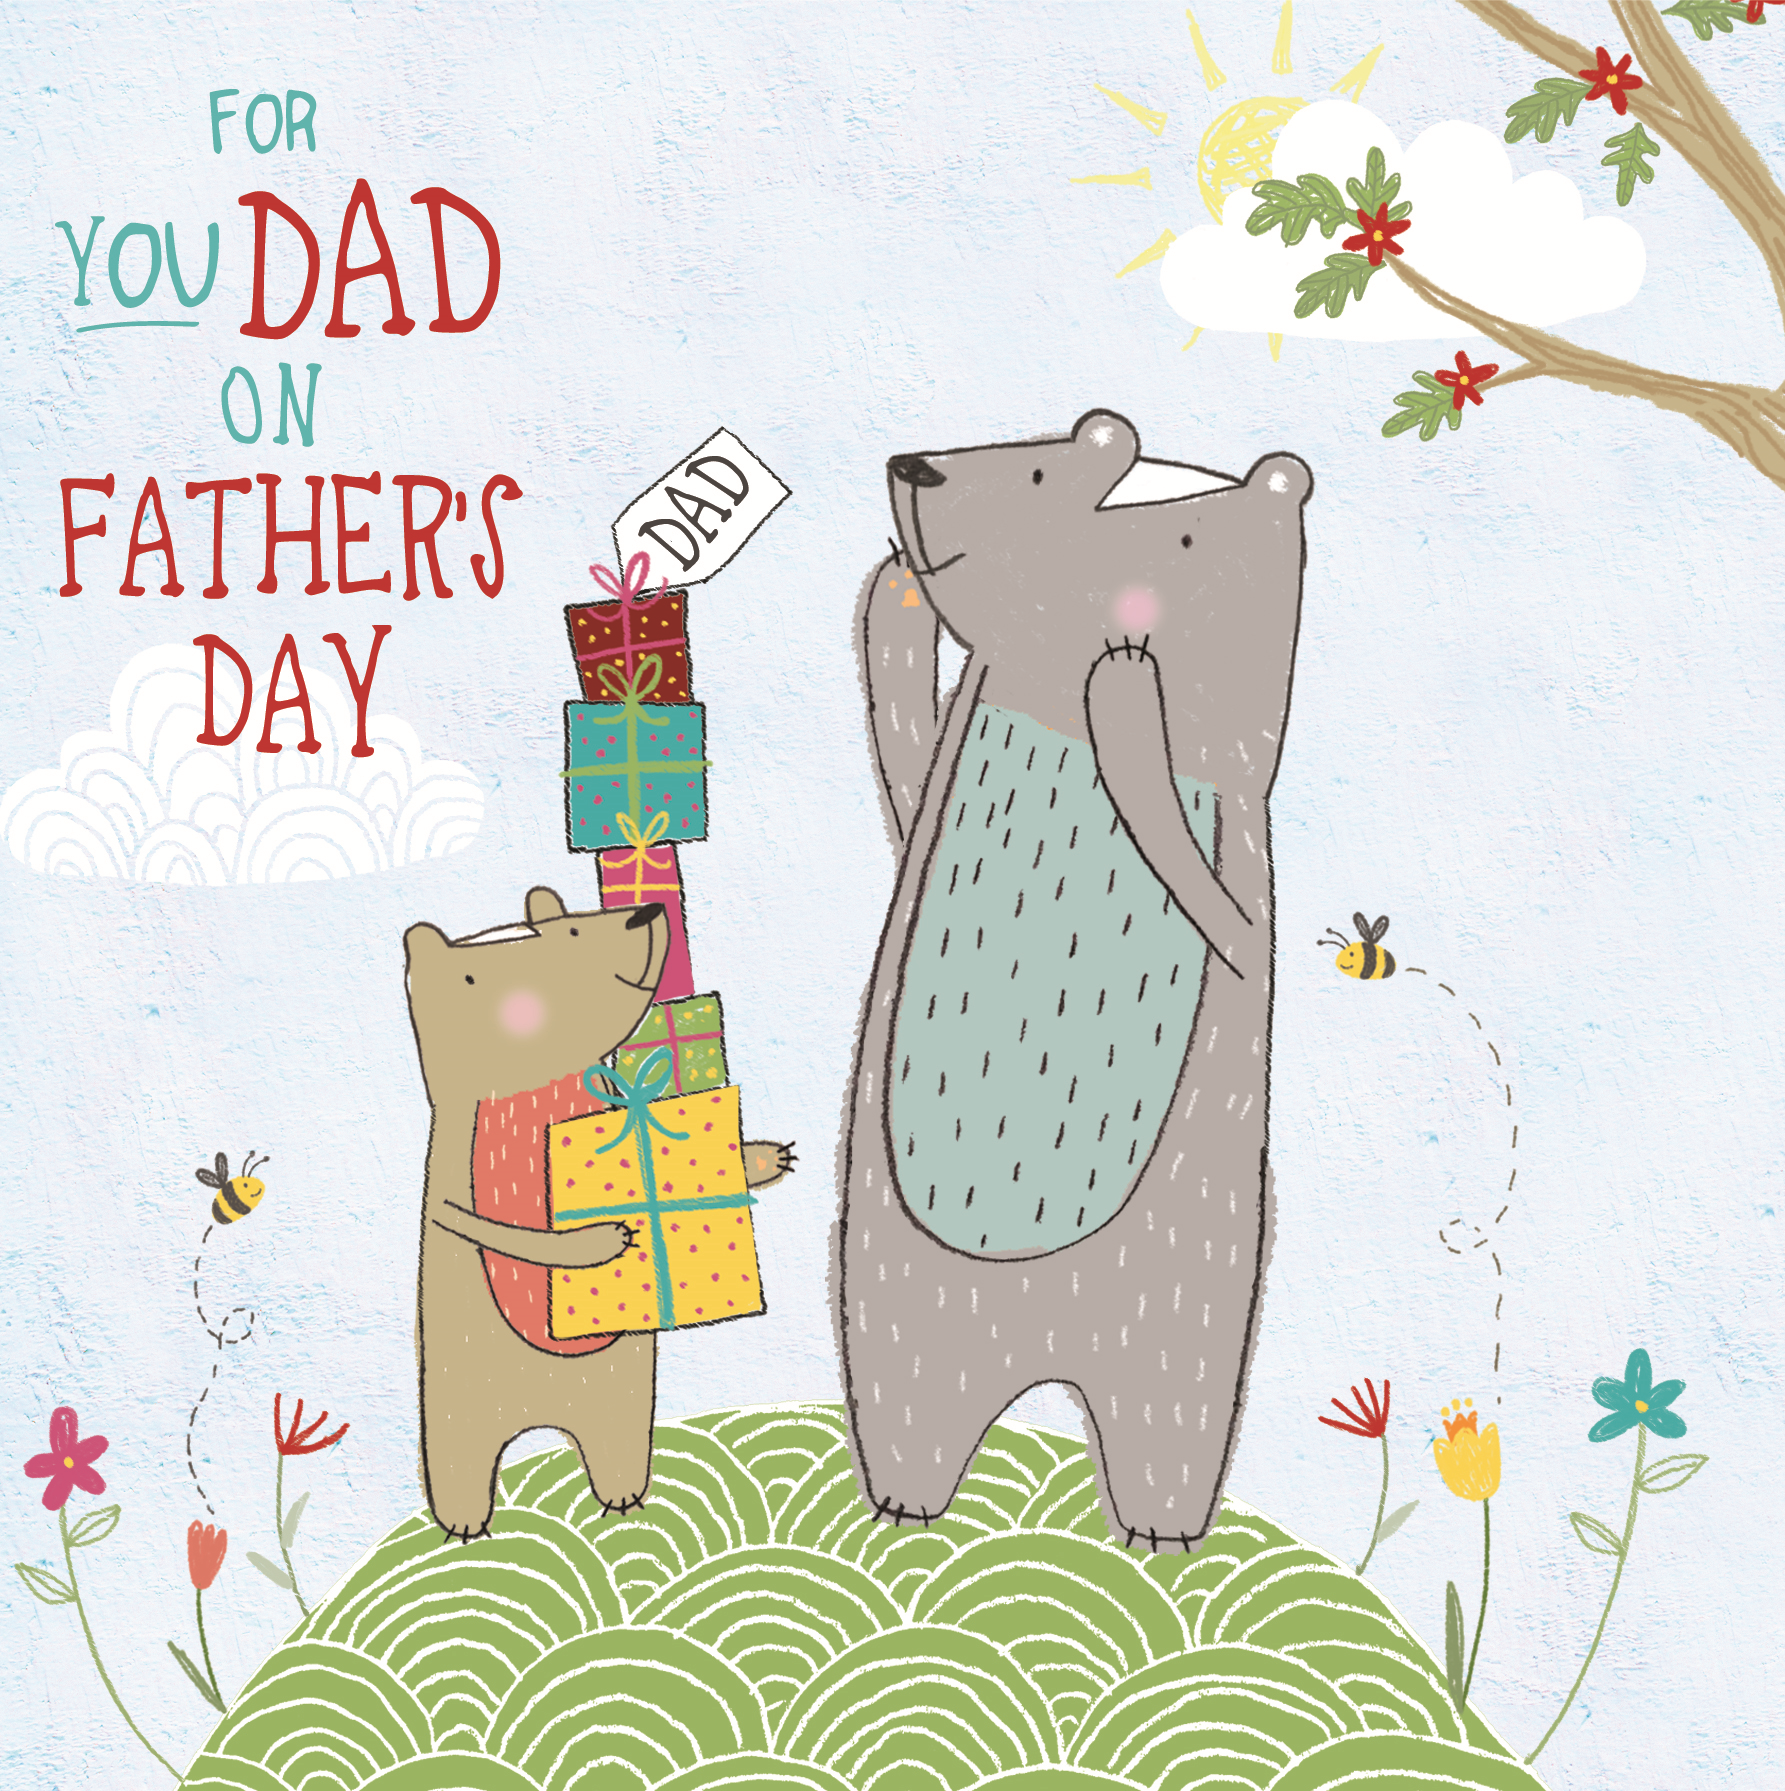 Thanks Dad Fathers Day Forest Friends Greeting Card Cute Bear